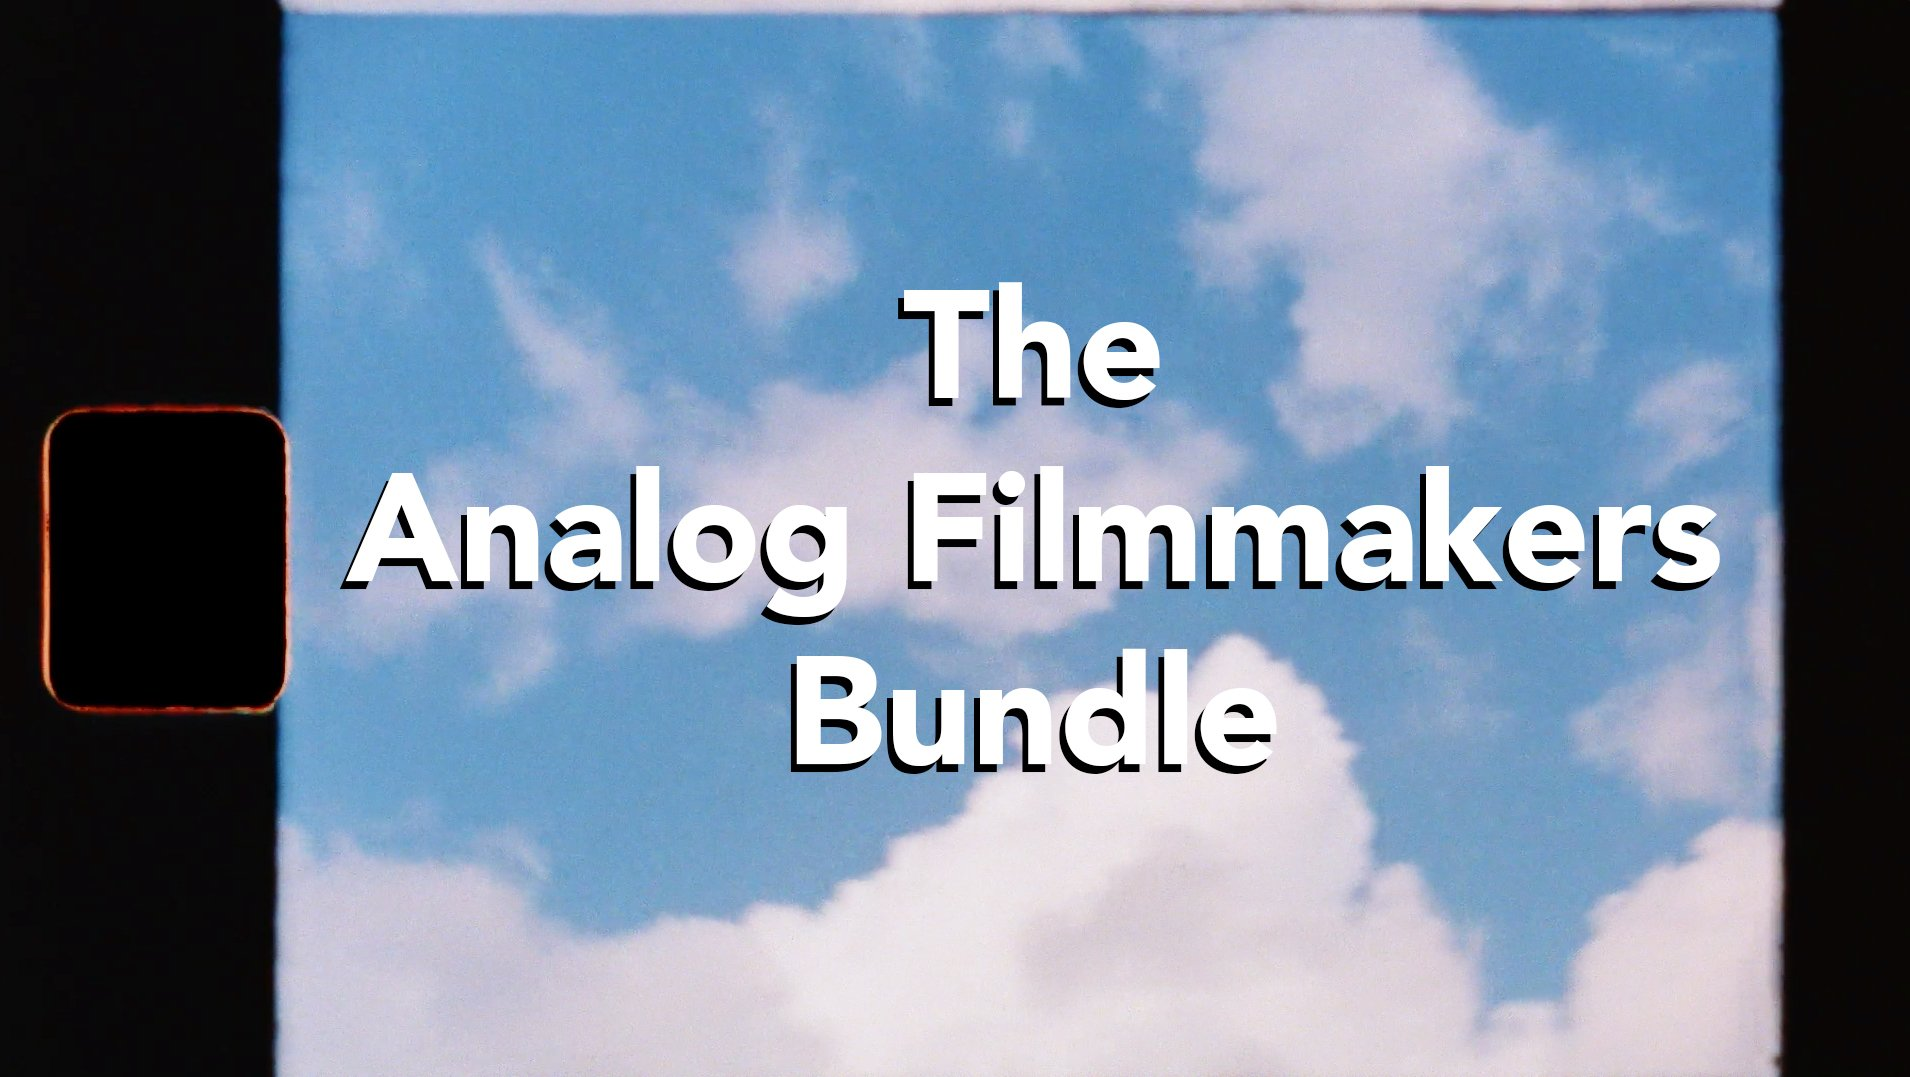 The Analog Filmmakers Bundle